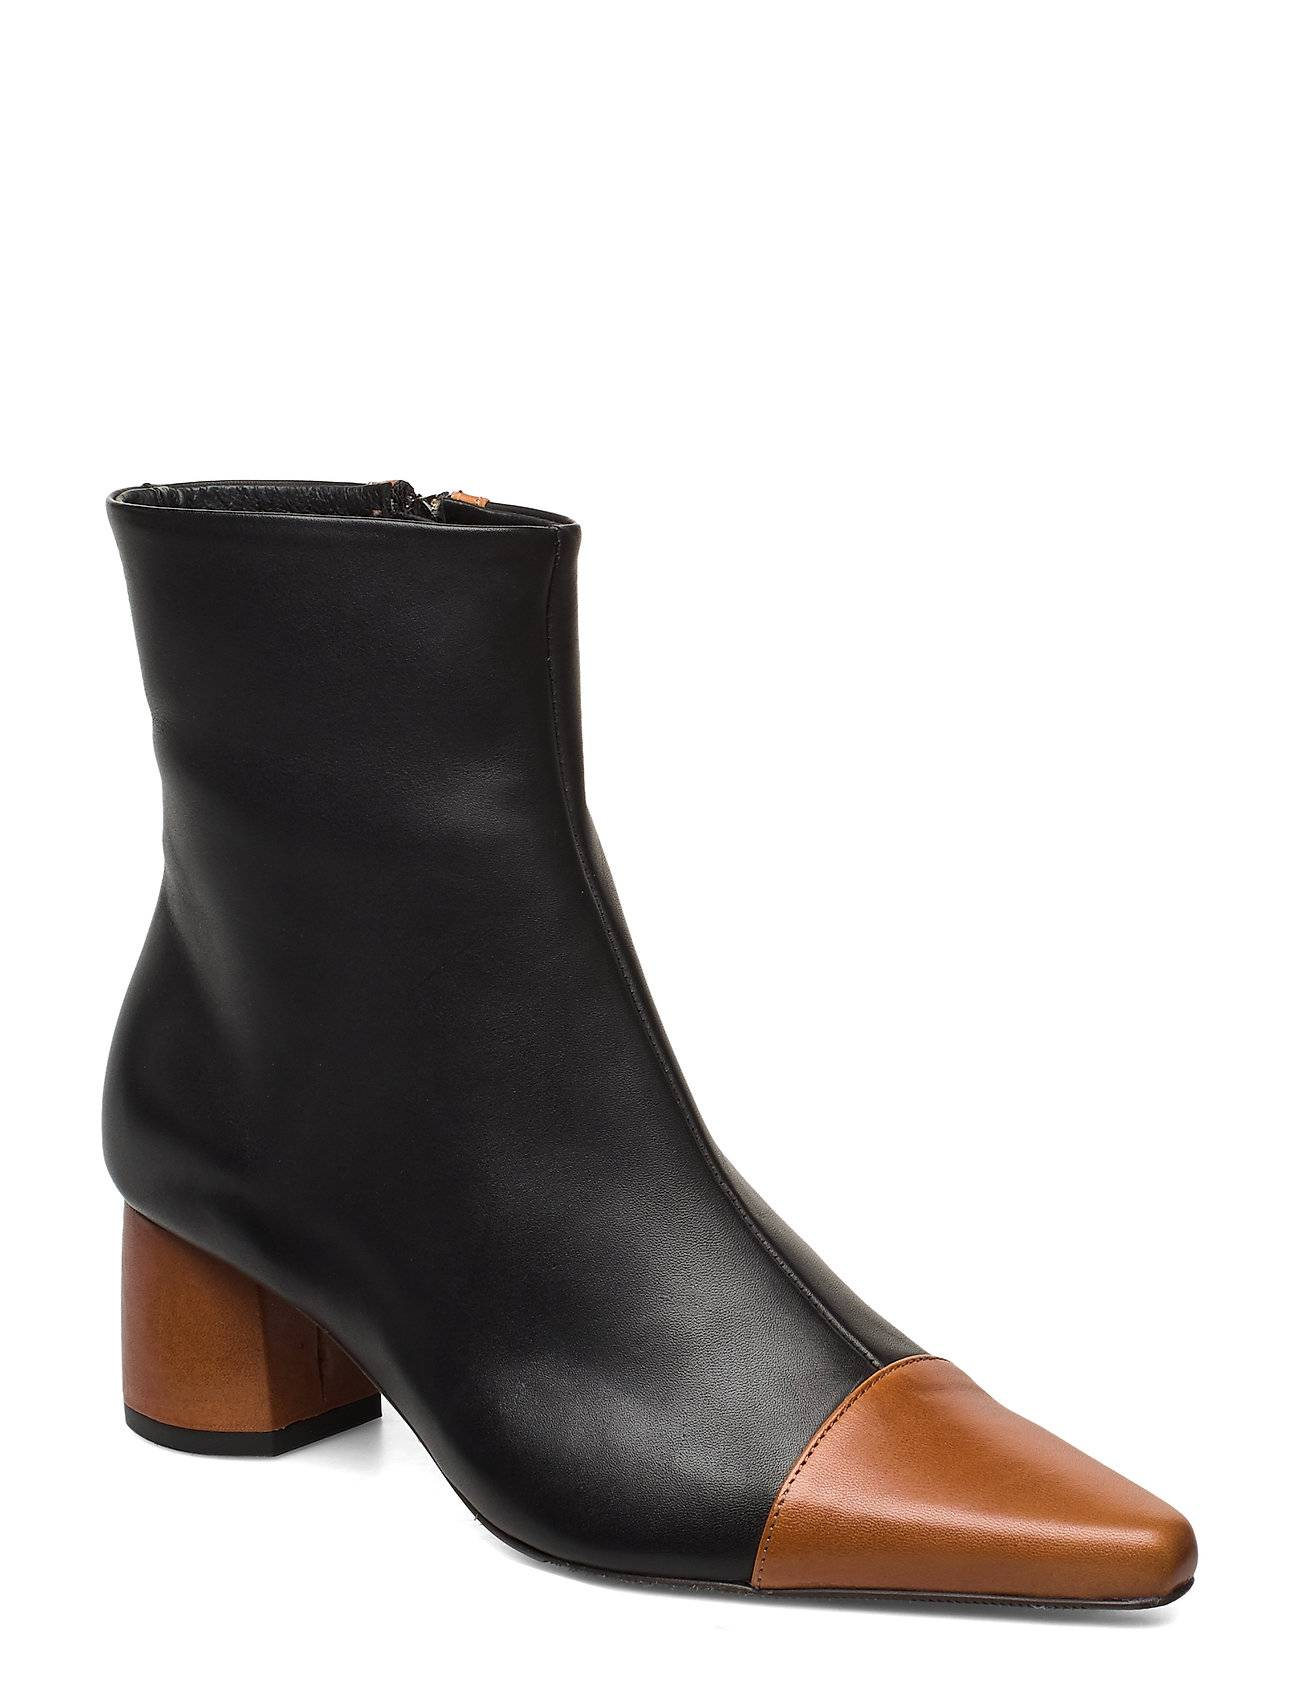 ANNY NORD Rocket Career Shoes Boots Ankle Boots Ankle Boots With Heel Musta